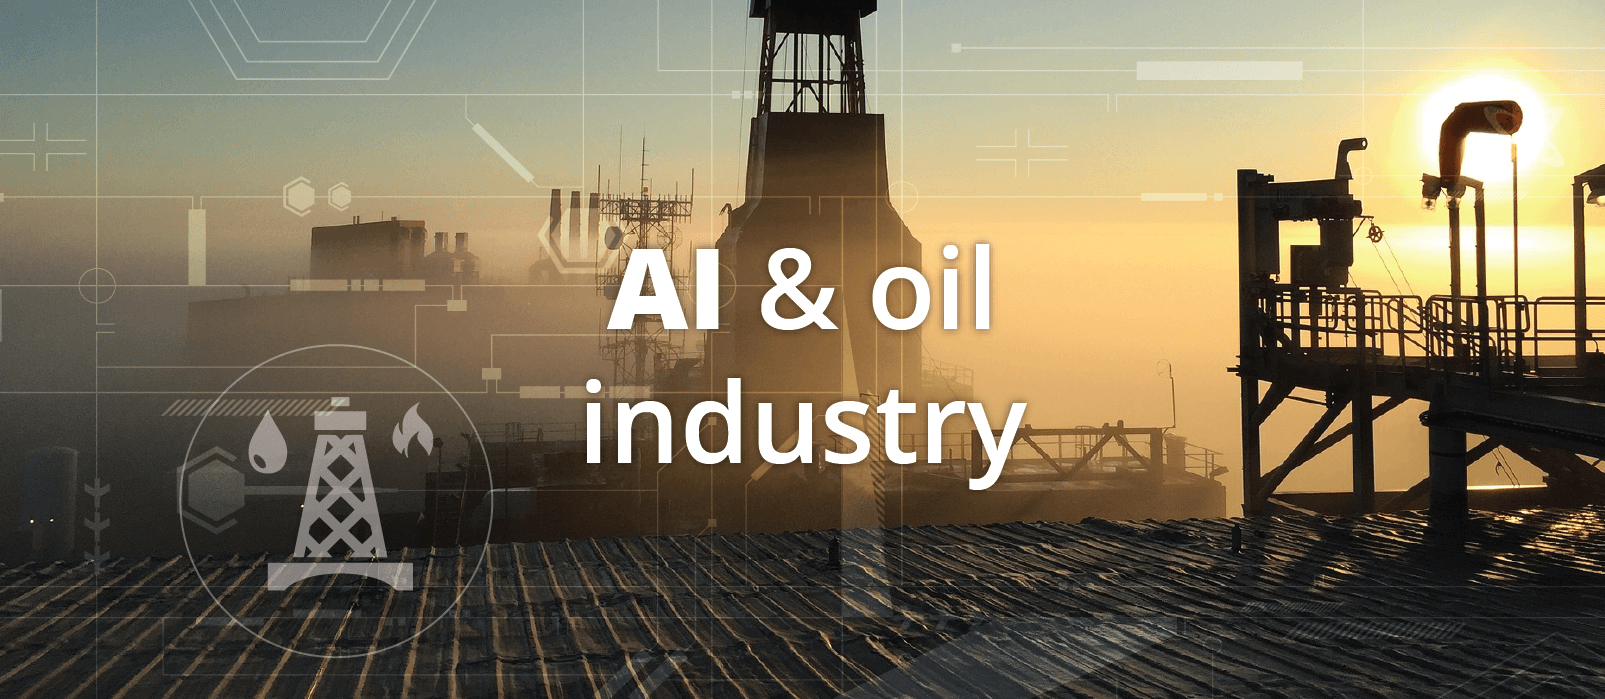 Restb Image Recognition Technology To Innovate In The Oil Industry